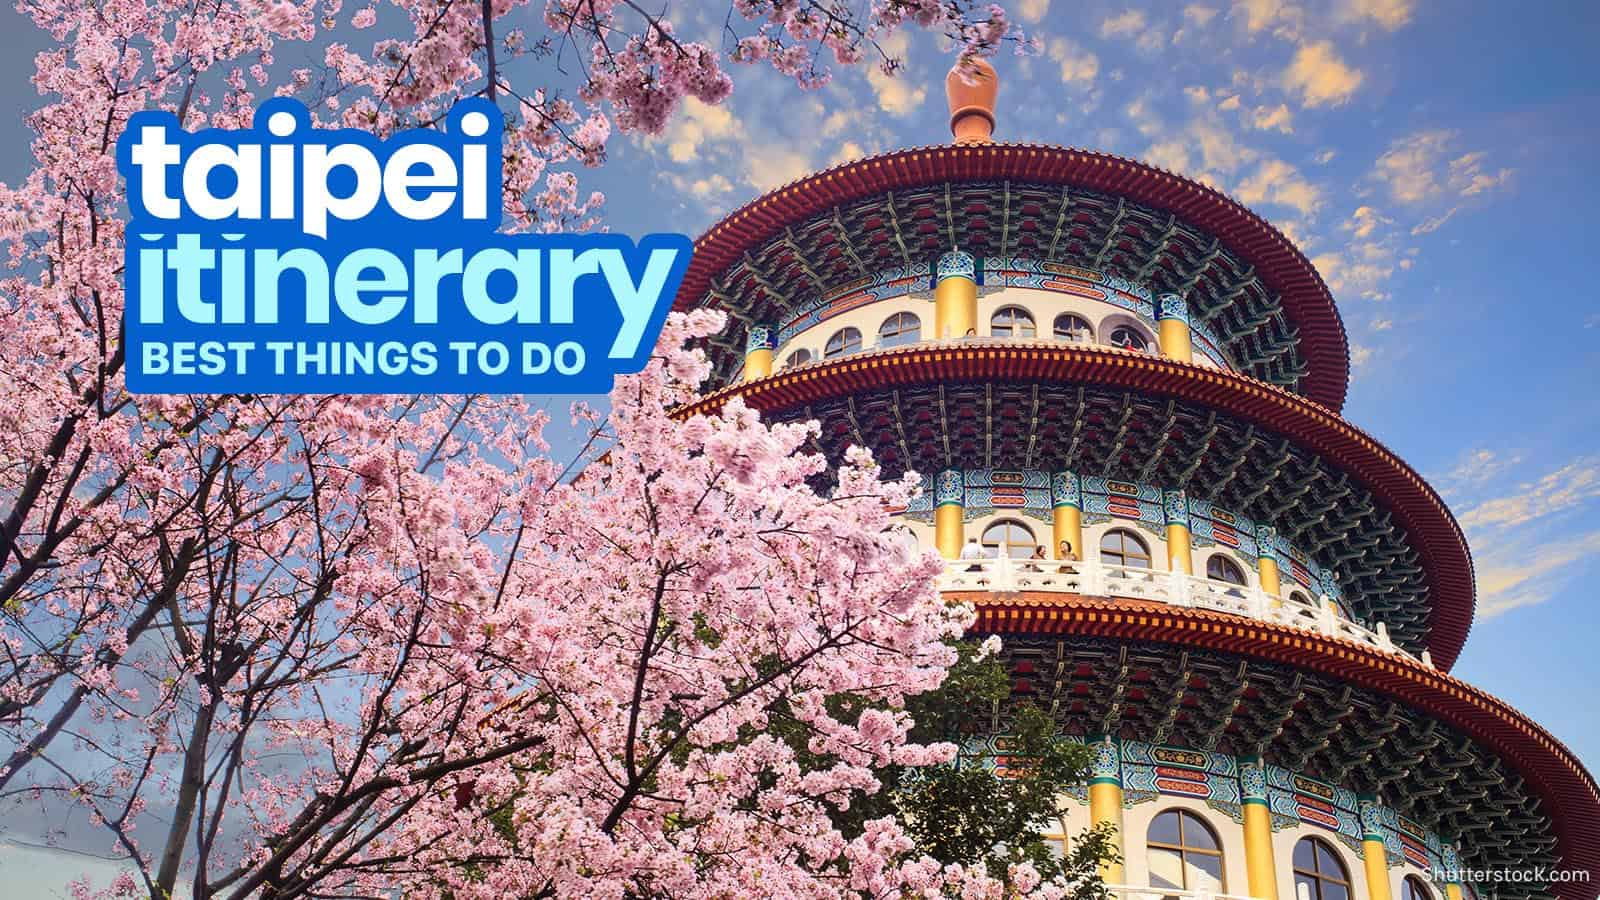 TAIPEI, TAIWAN ITINERARY: 20 Things to Do and Places to Visit